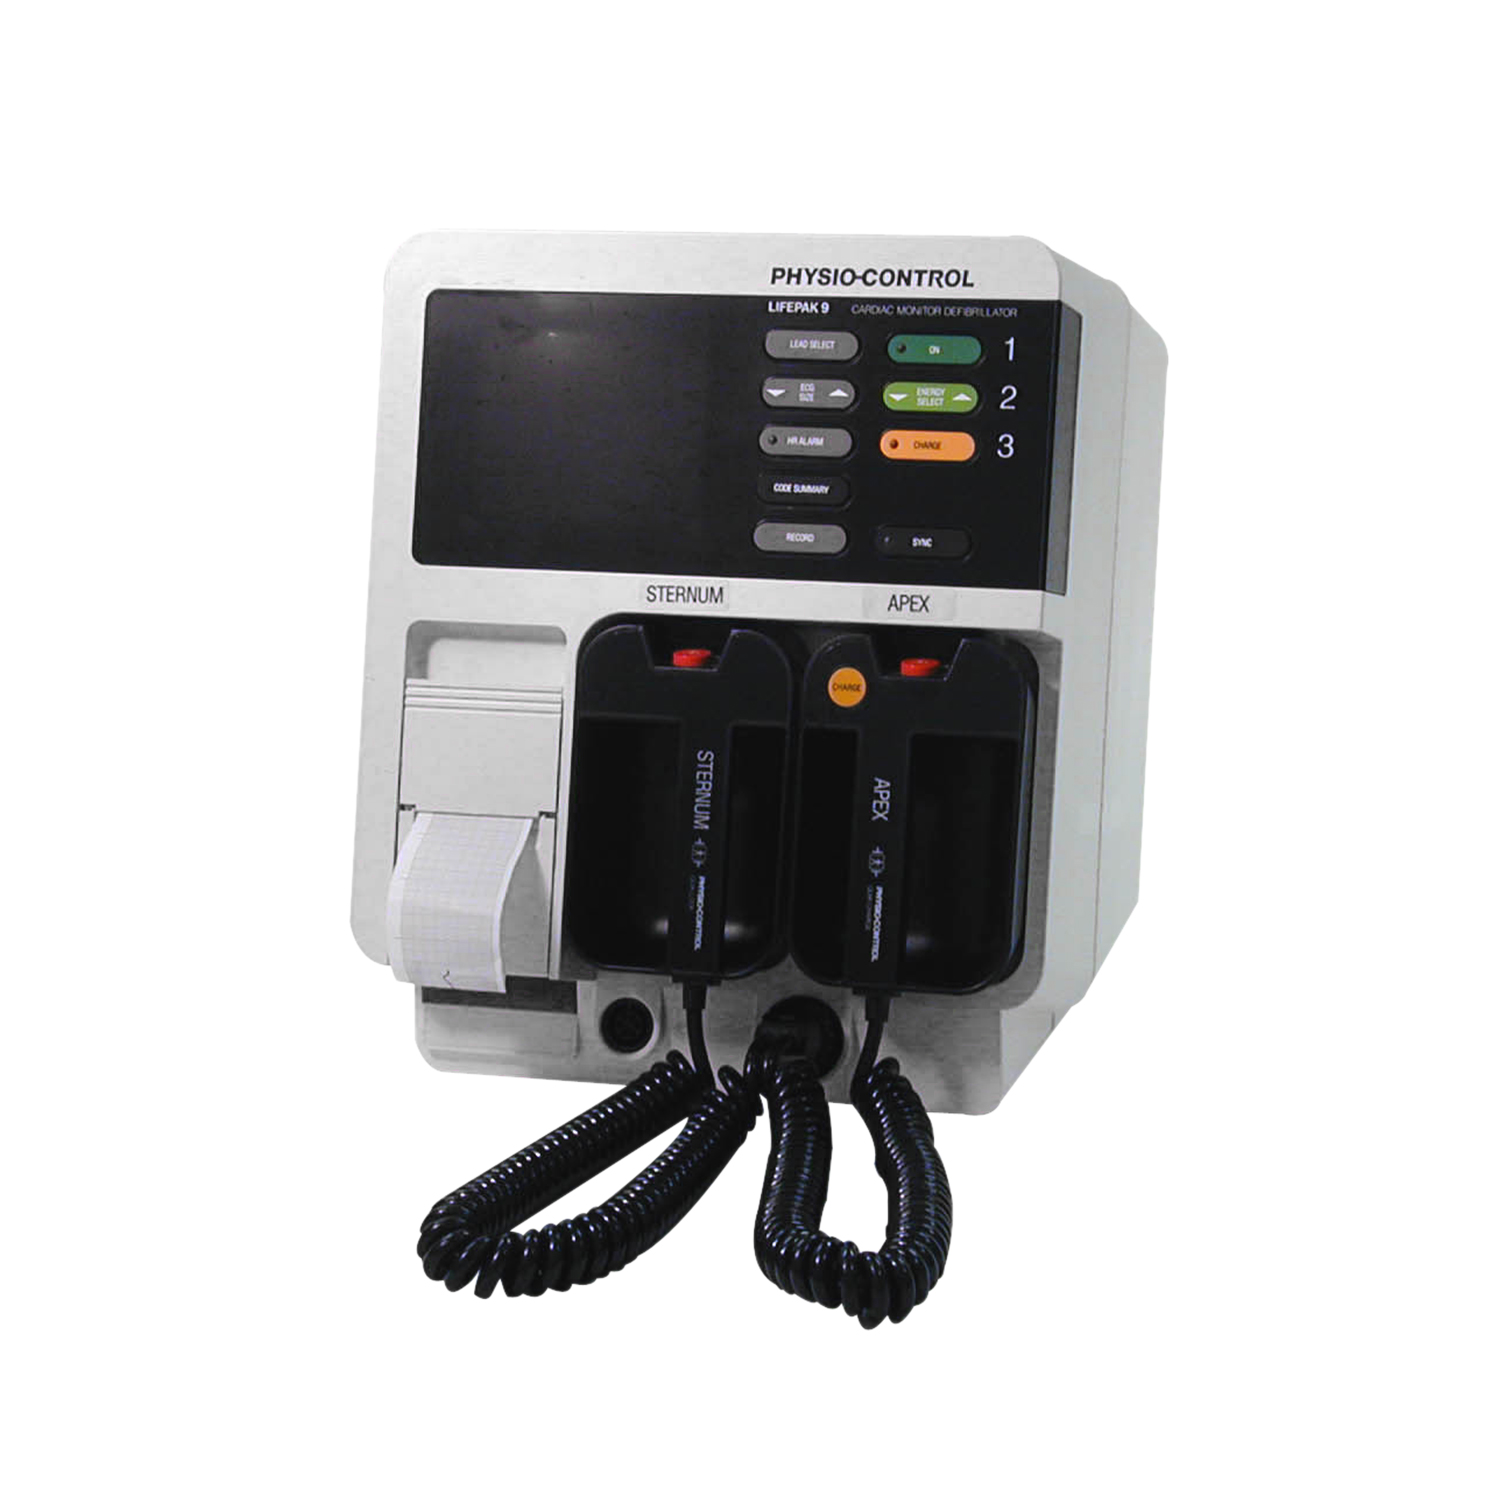 Medtronic Physio-Control Lifepak 9 Defibrillator (9, 9A, 9P)